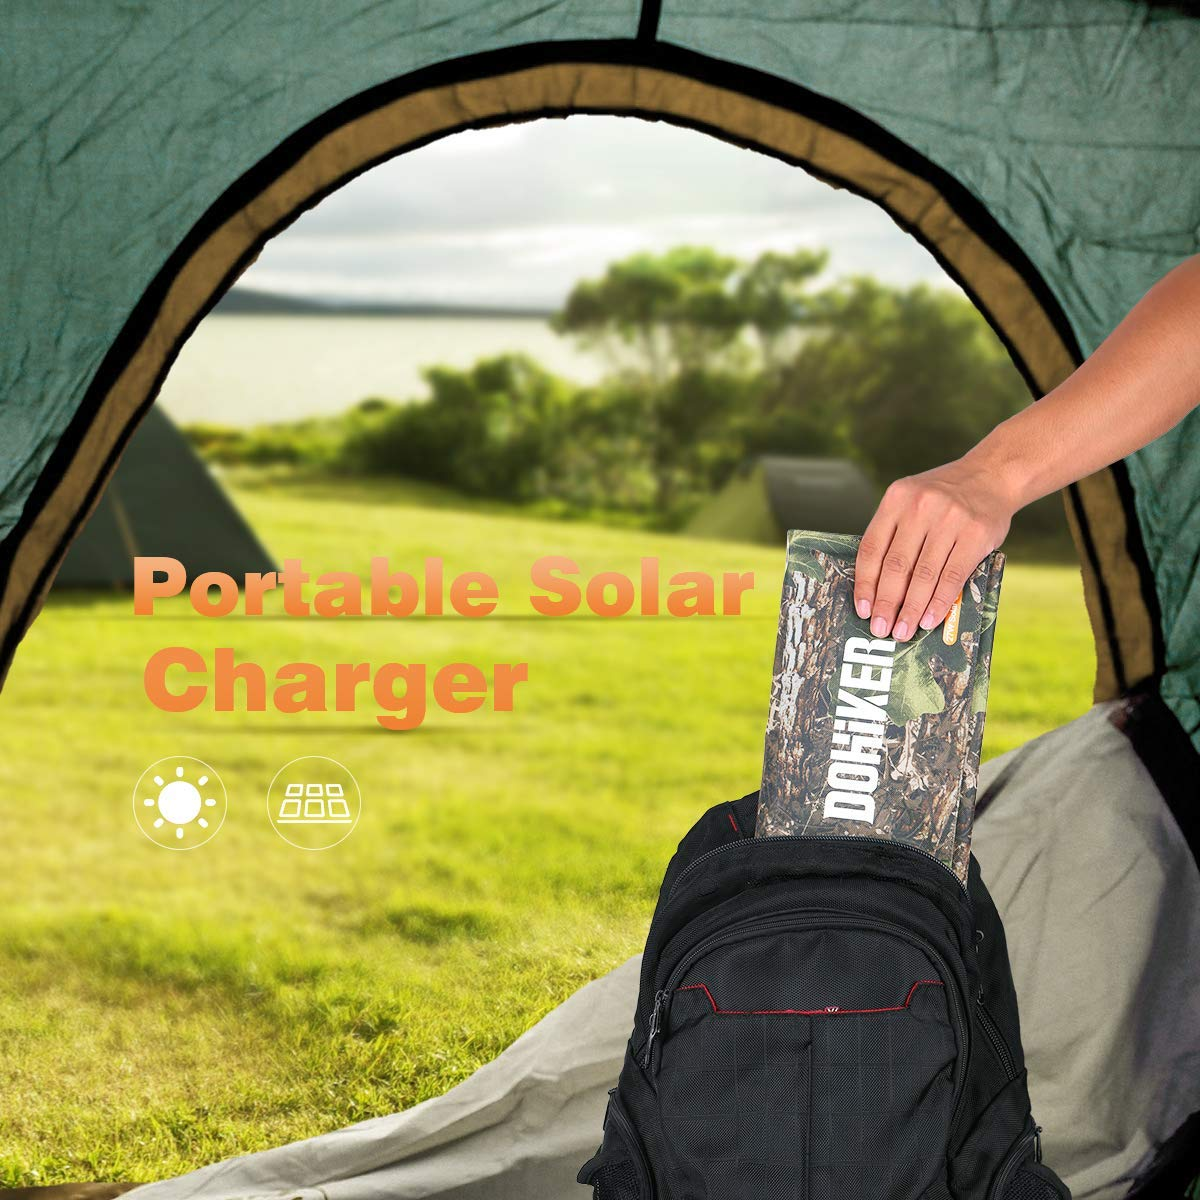 Dohiker Portable Foldable Solar Panel Charger, 27W Solar Phone Charger with 3 USB Ports,Durable & Waterproof Solar Charger for Cell Phone, PowerBank, and Electronic Devices, Great for Camping, Hiking by Dohiker (Image #6)